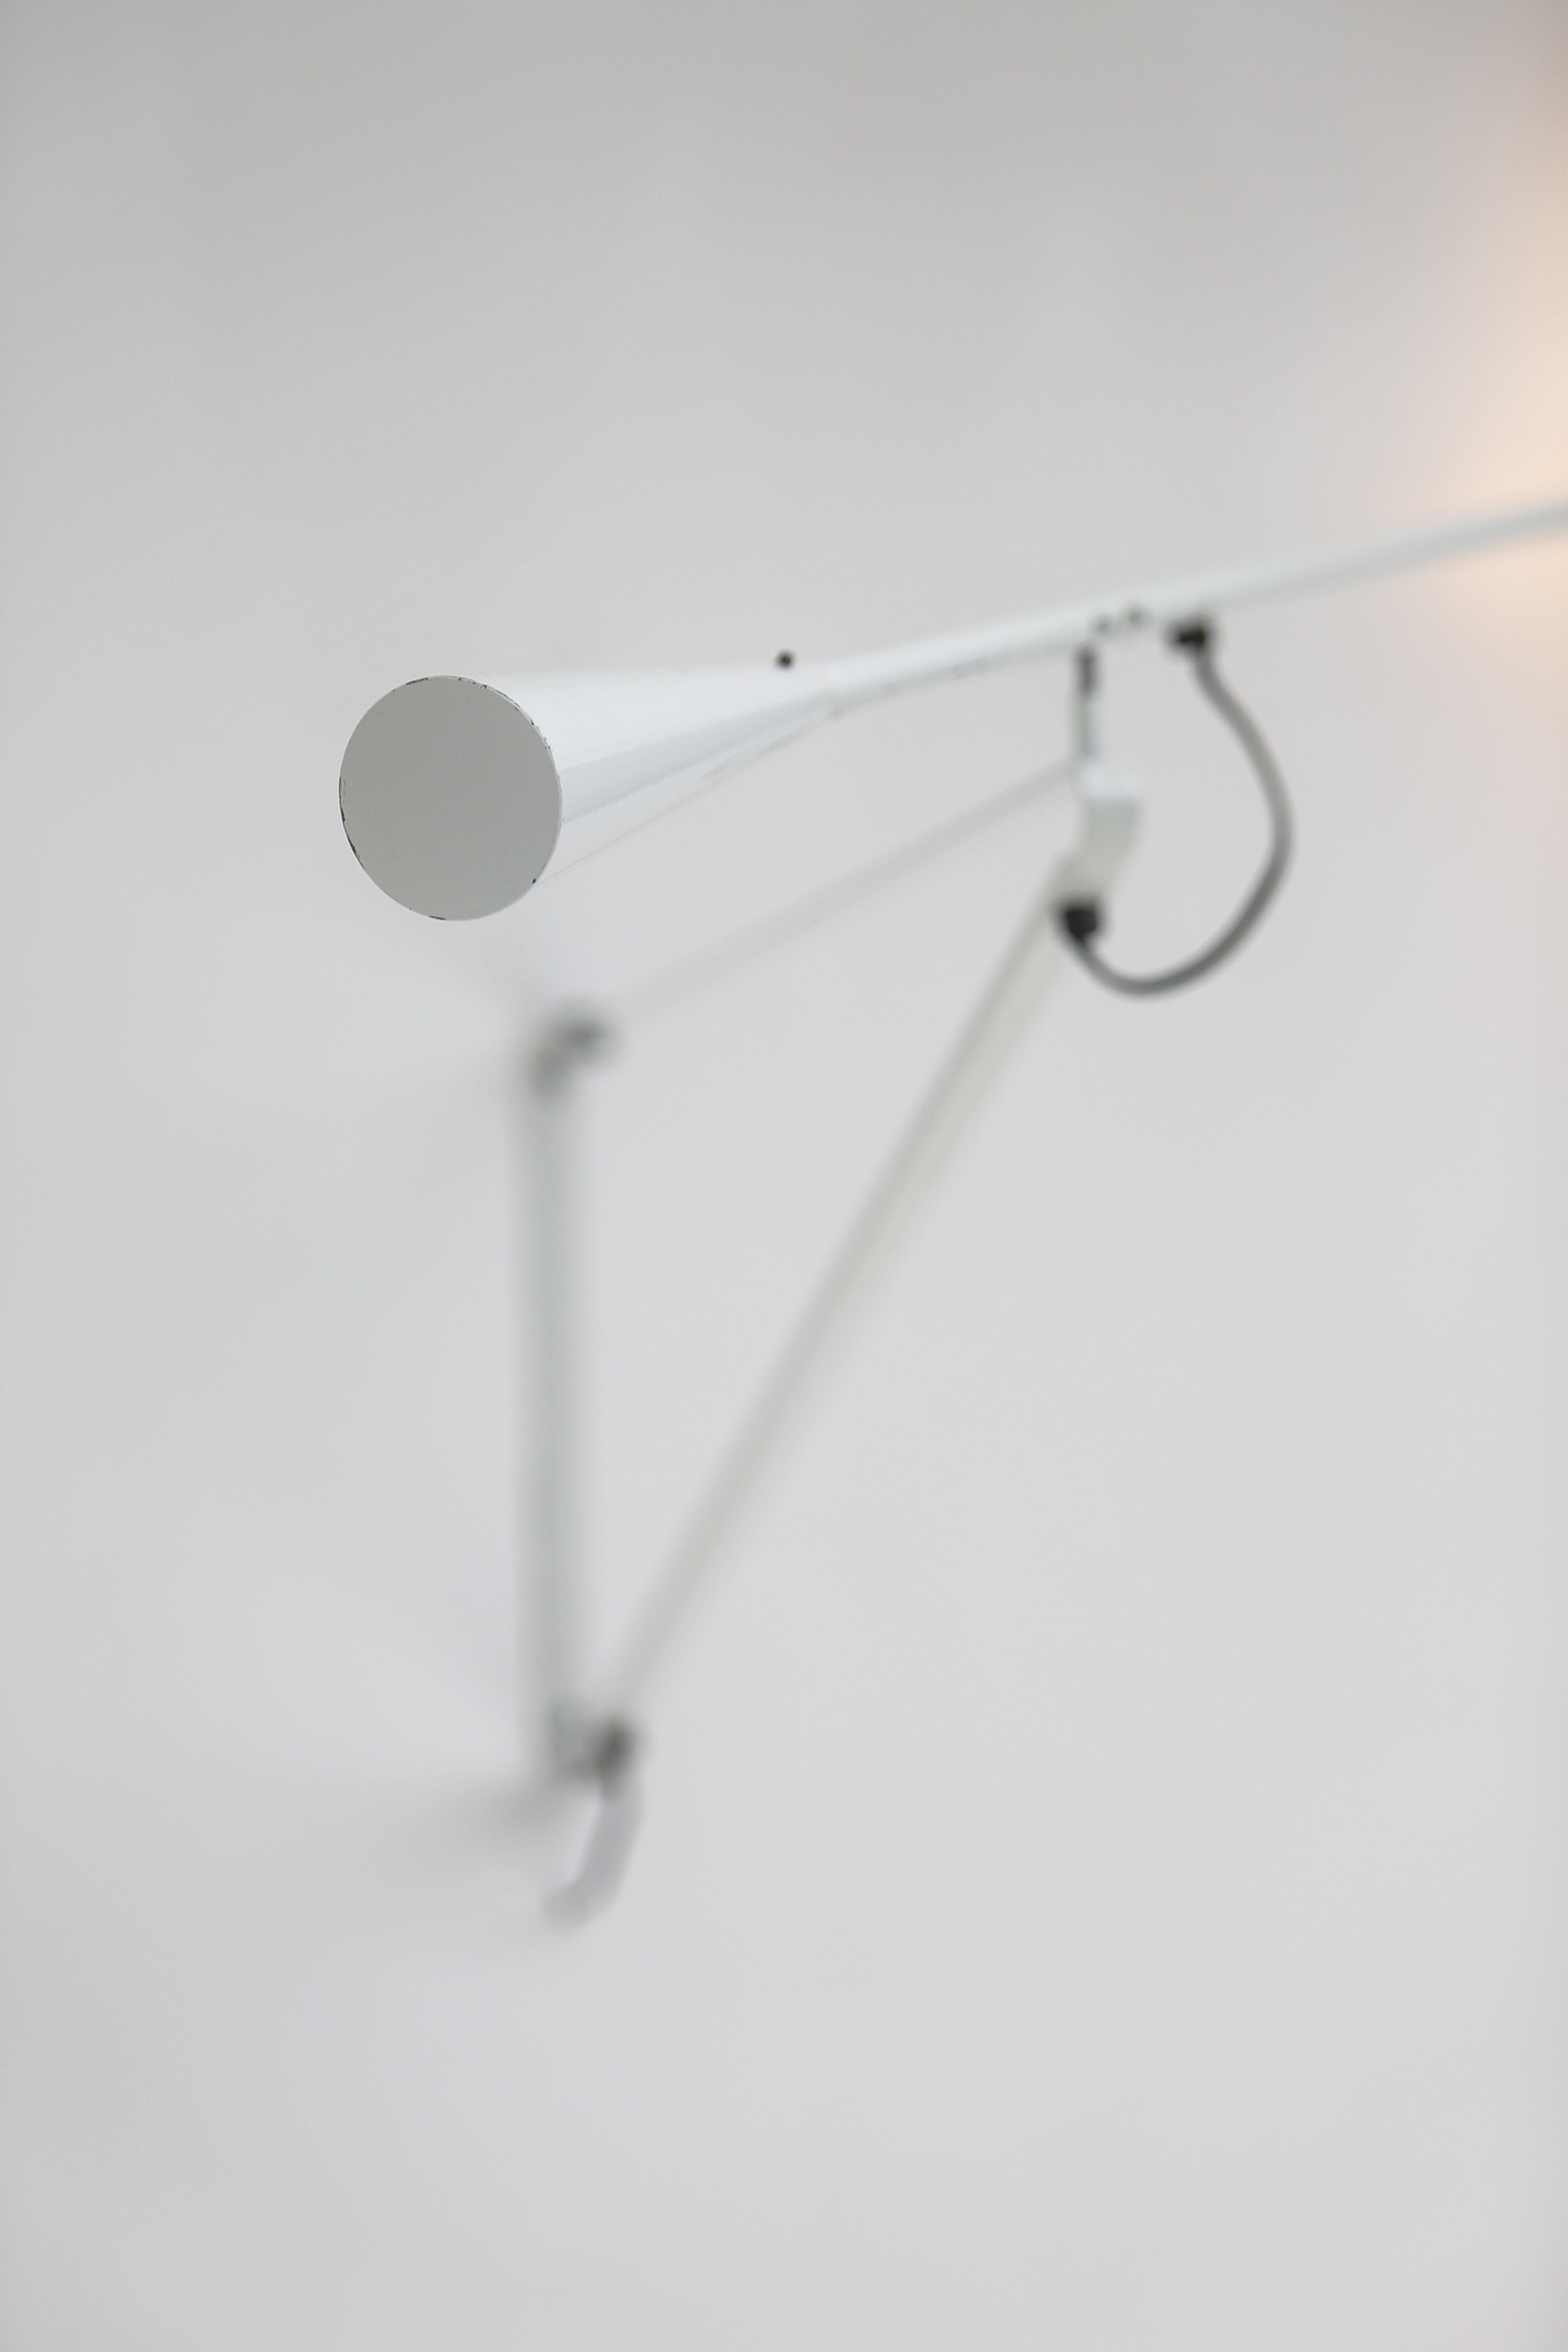 Paolo Rizzatto Arteluce Model 265 Wall Lamp Italy 1973image 8